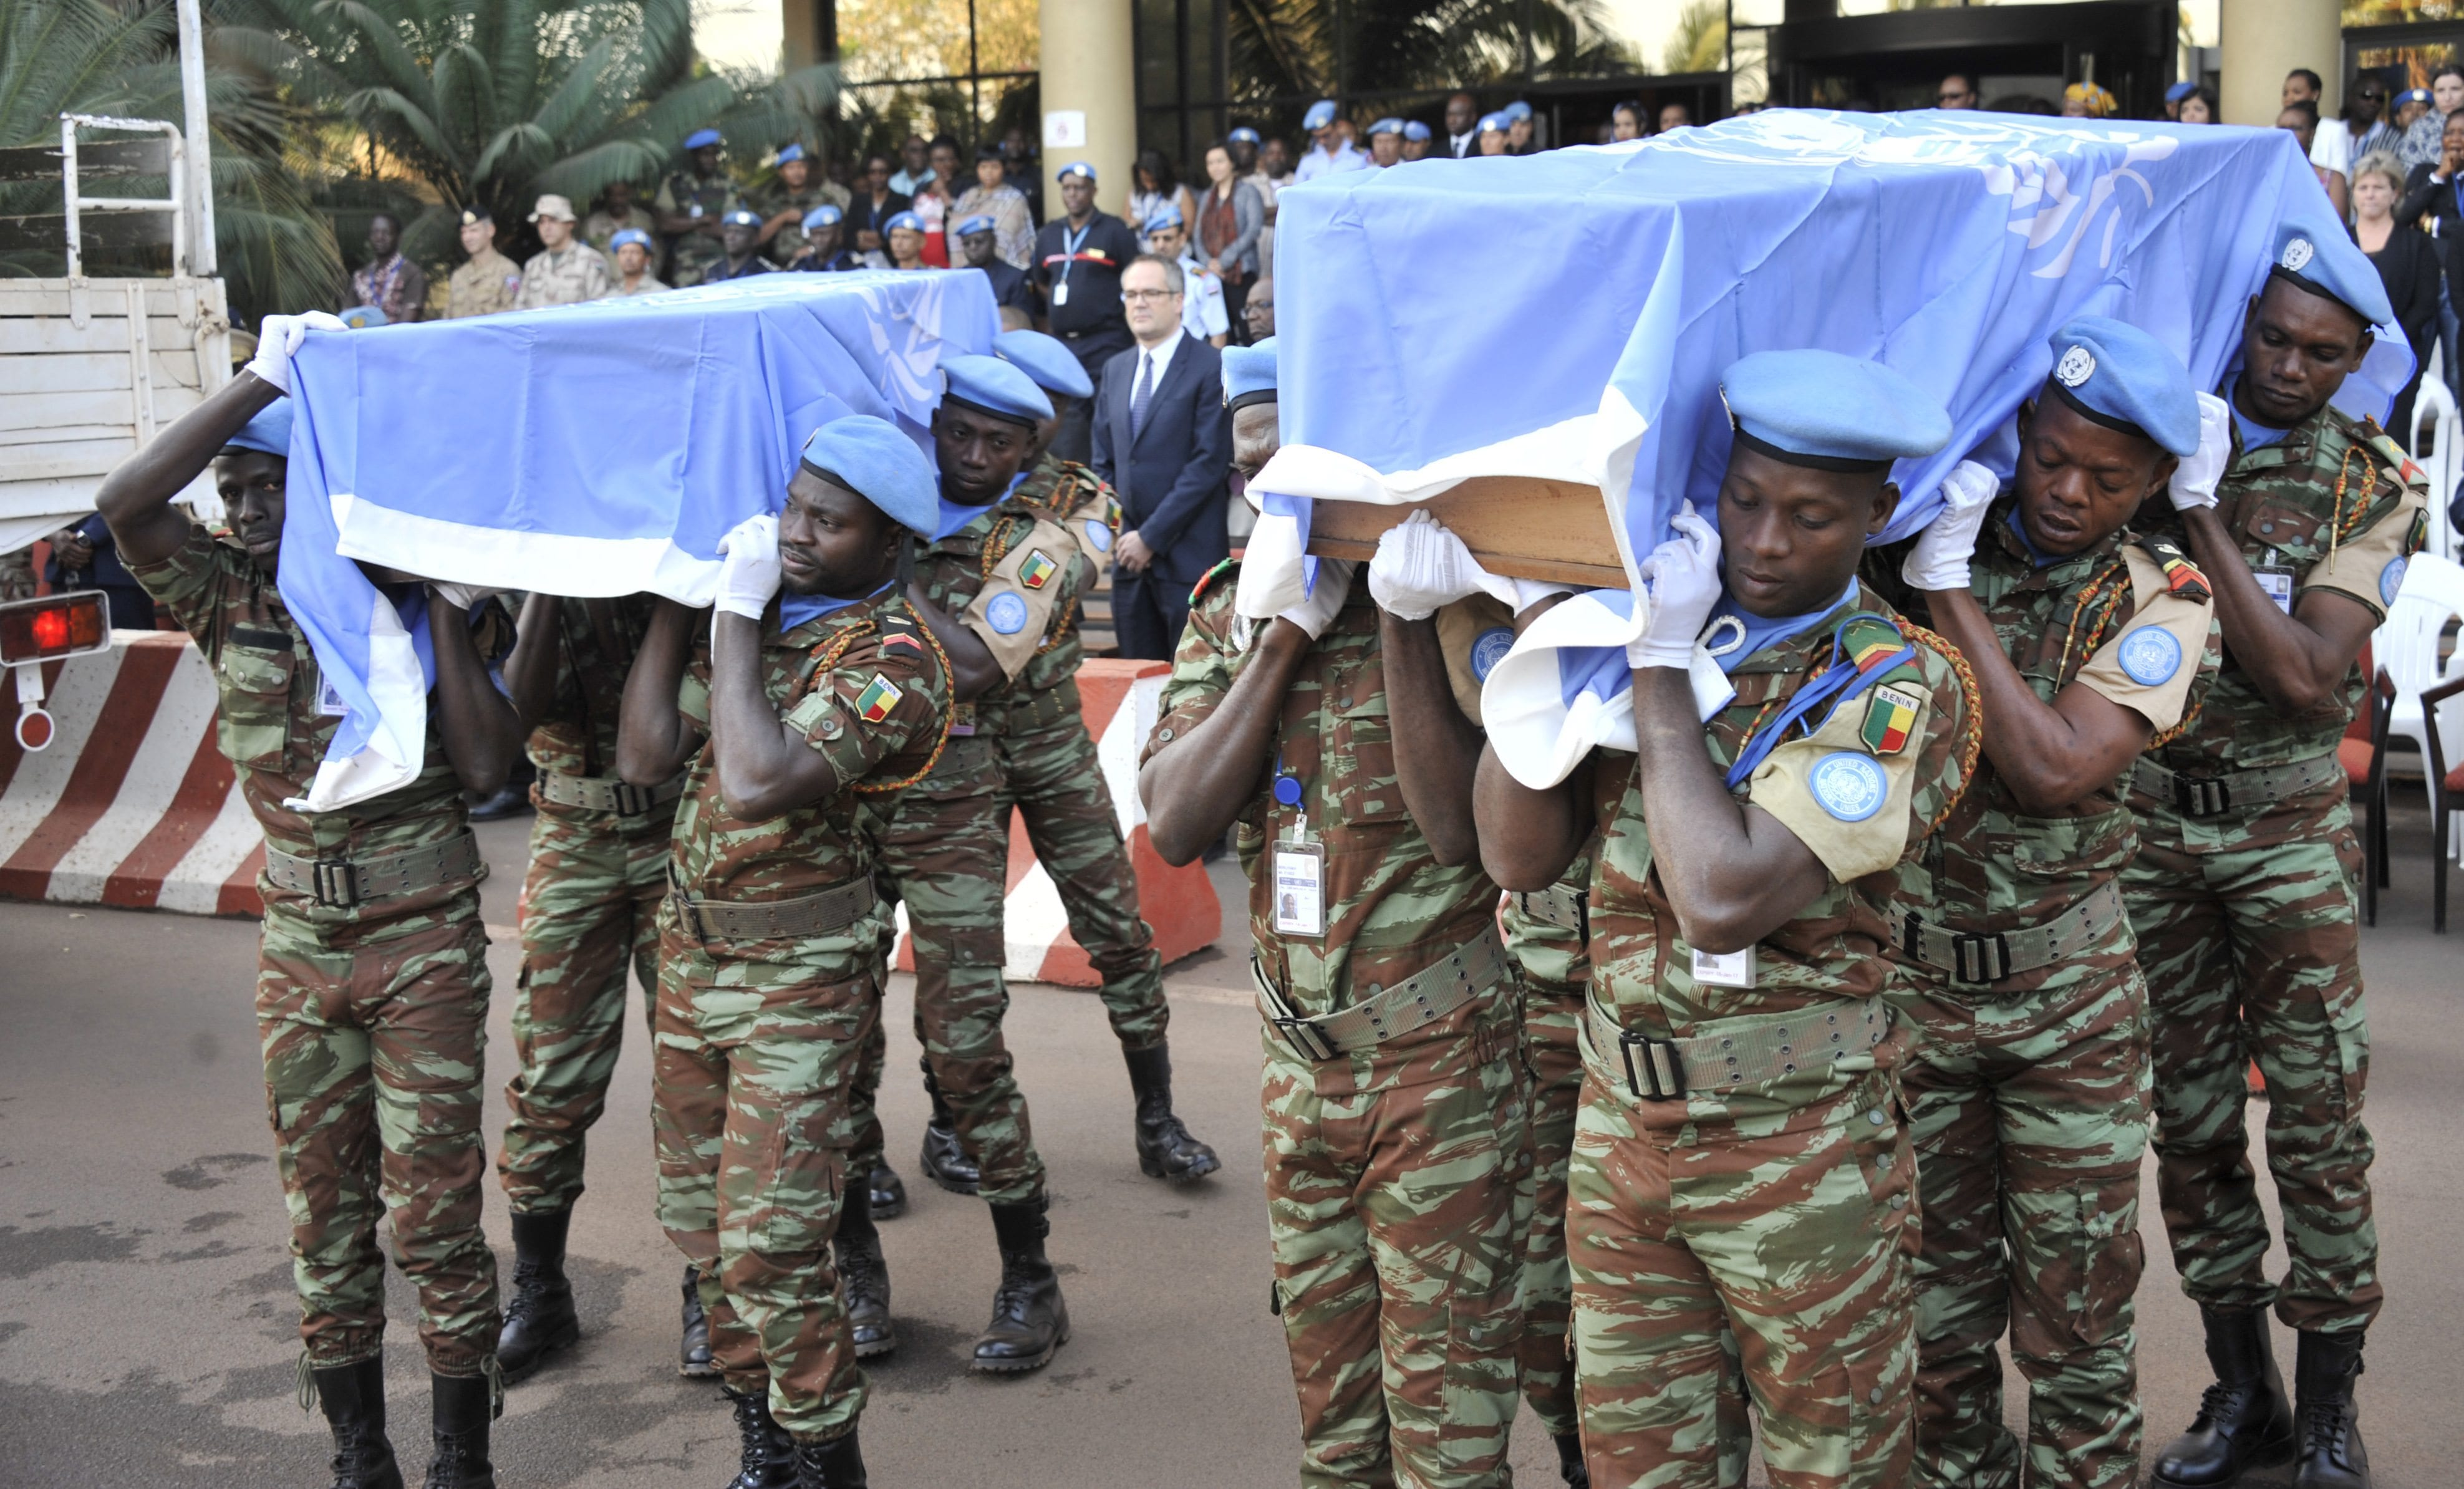 Image UN peacekeepers funeral Mali